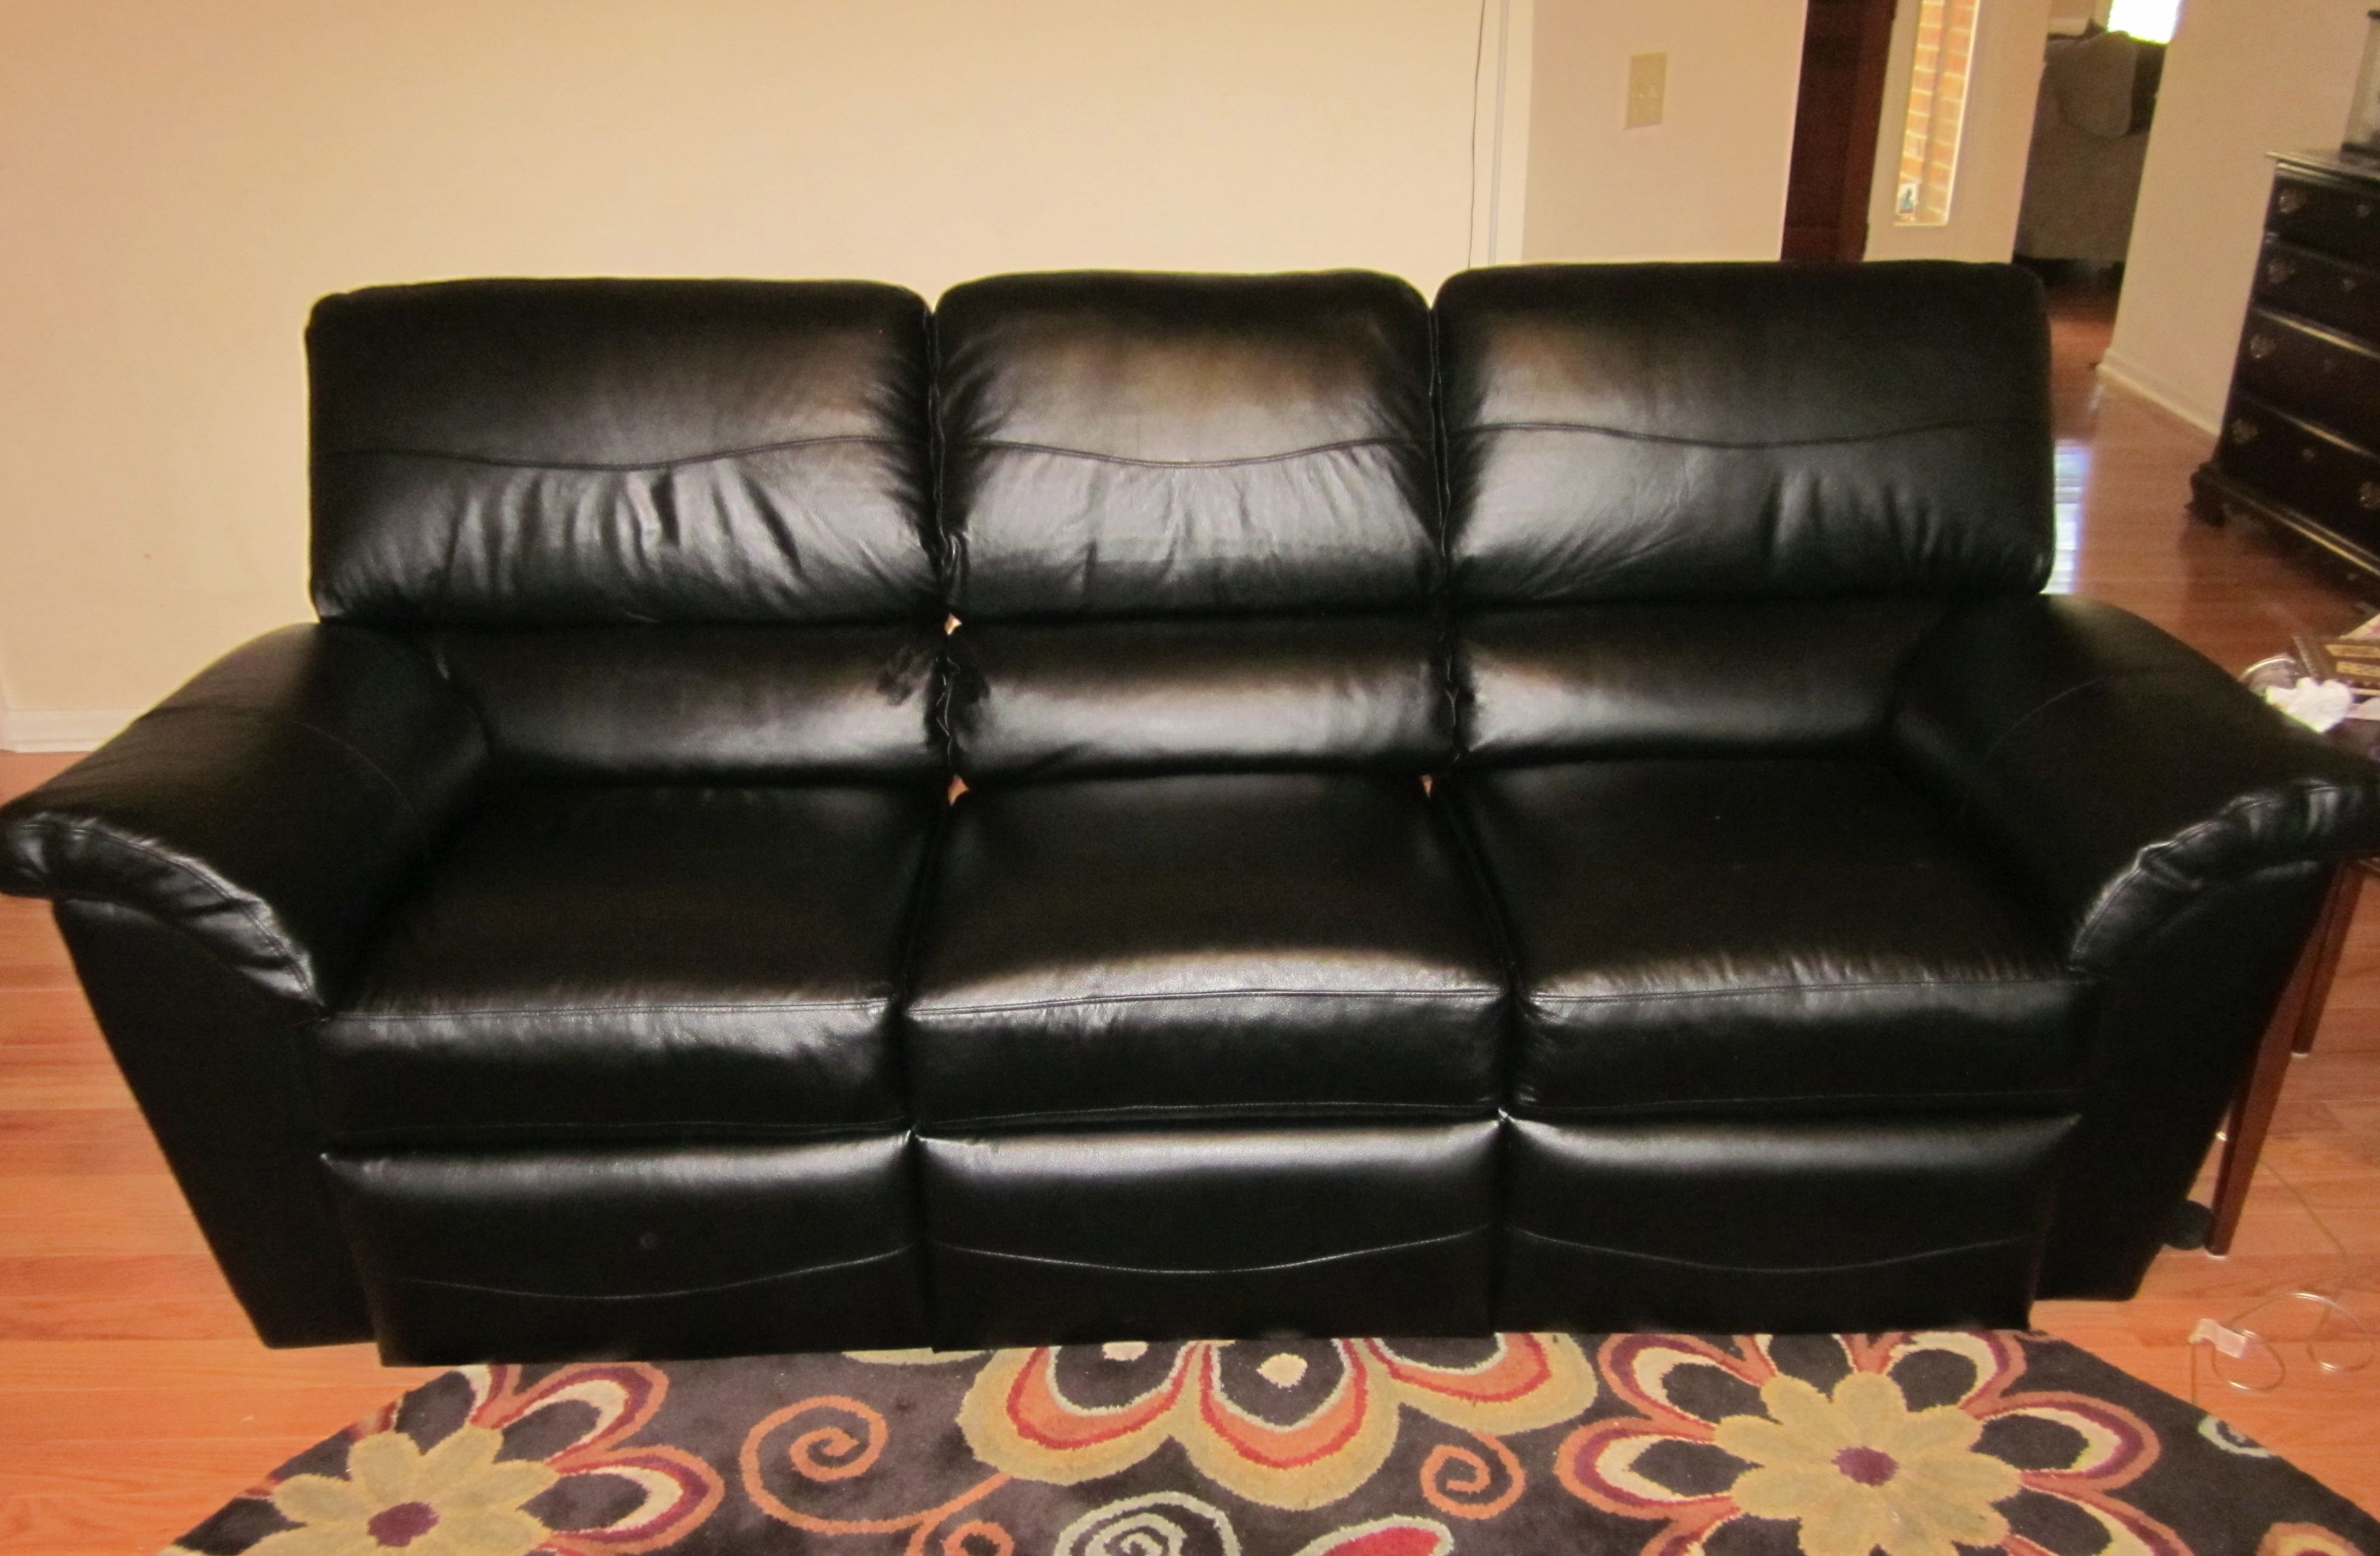 La-Z-Boy Recliners and La-Z-Boy Furniture Reviews ...